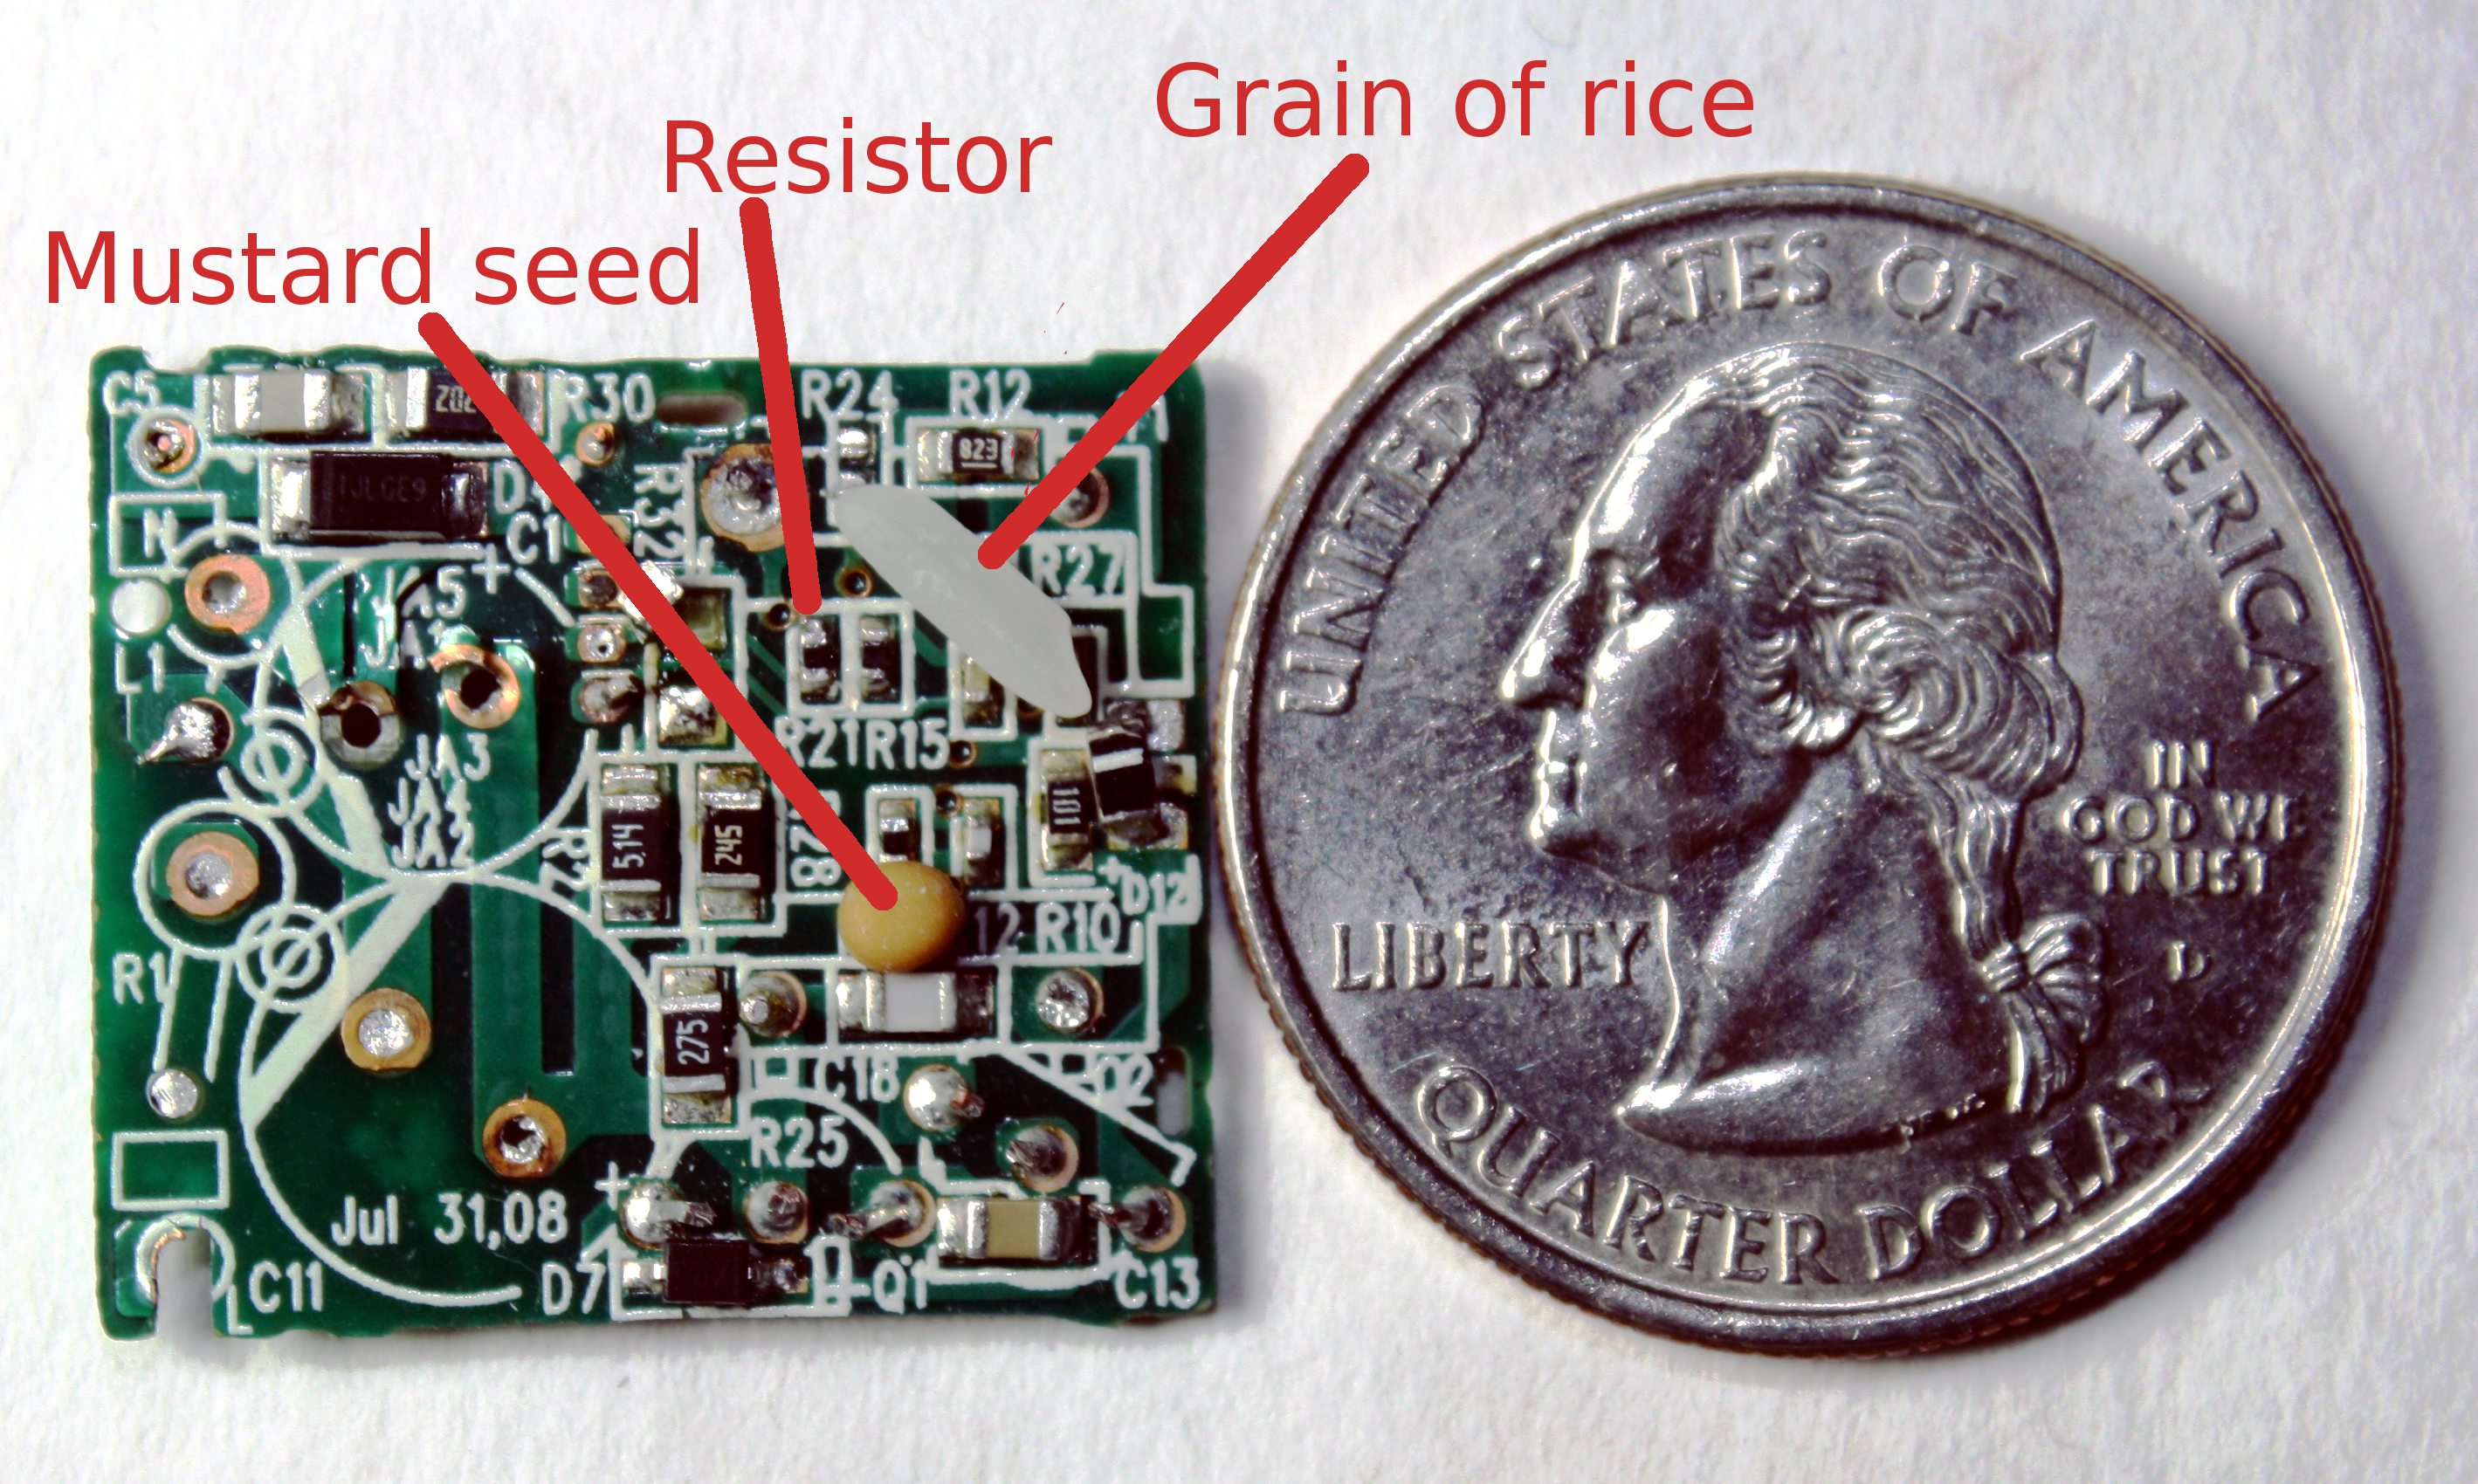 Apple Iphone Charger Teardown Quality In A Tiny Expensive Package Cell Phone Circuit Further Diagram Board Compared To Mustard Seed Grain Of Rice And